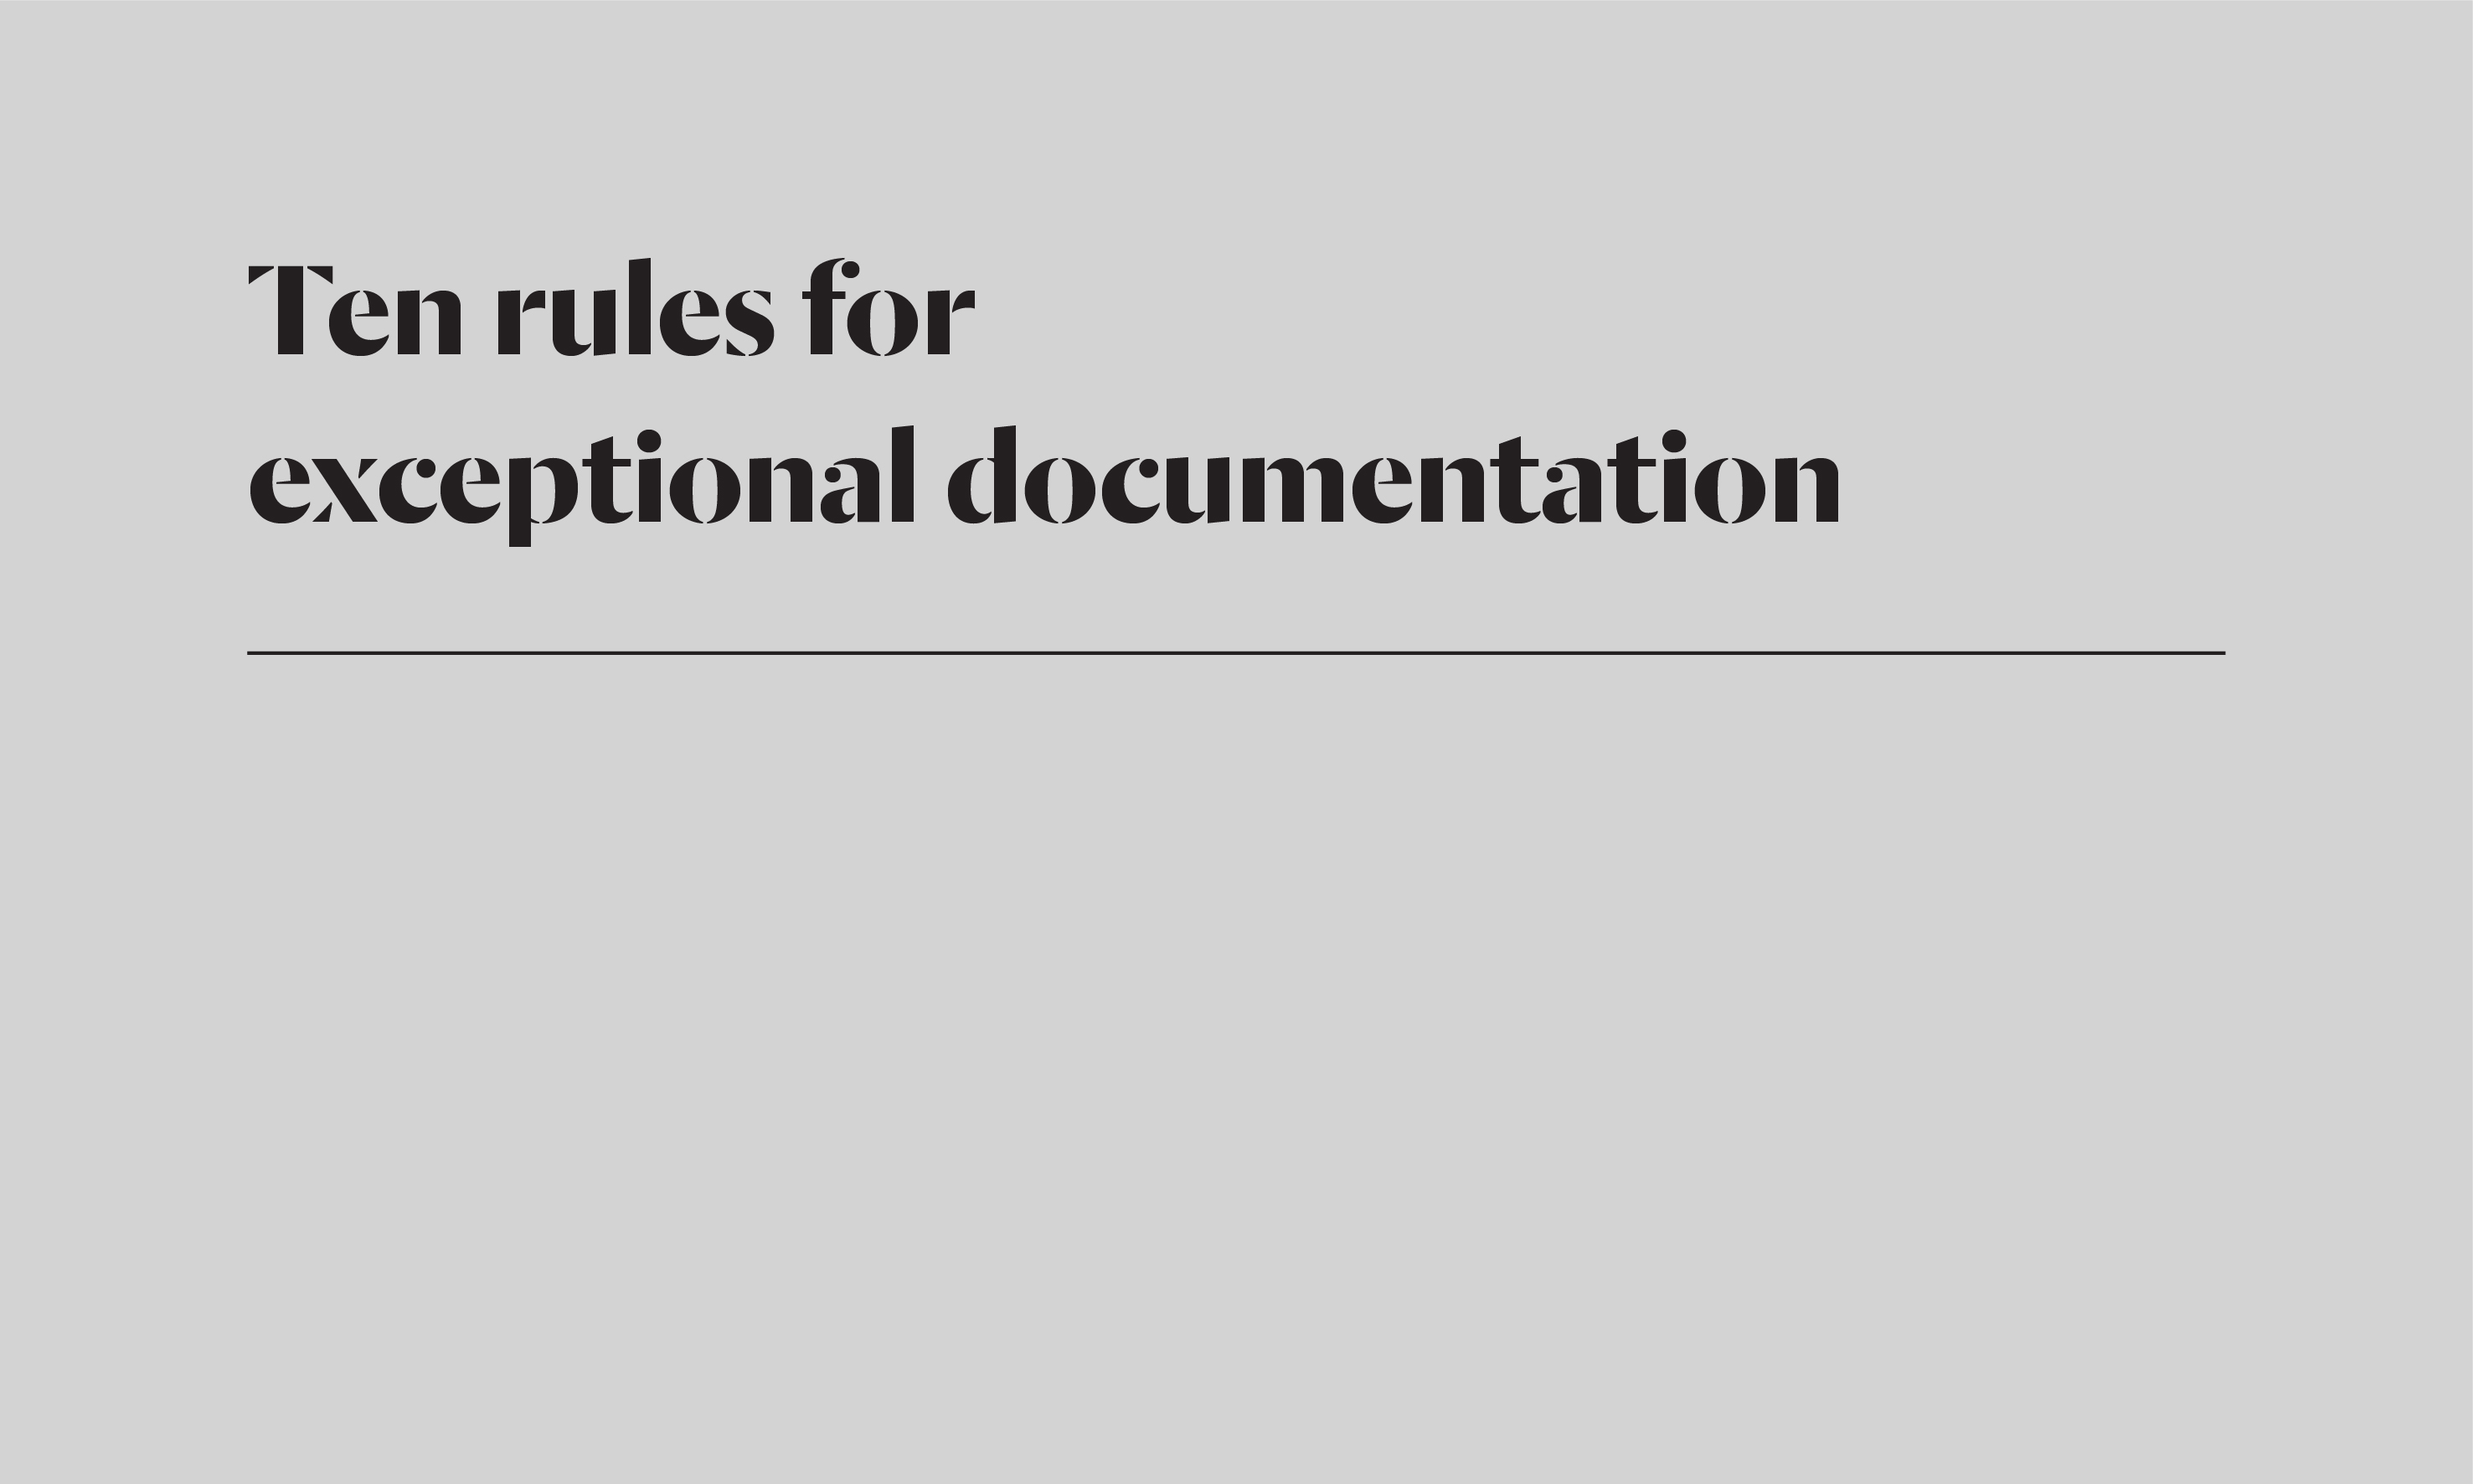 Ten rules for exceptional documentation